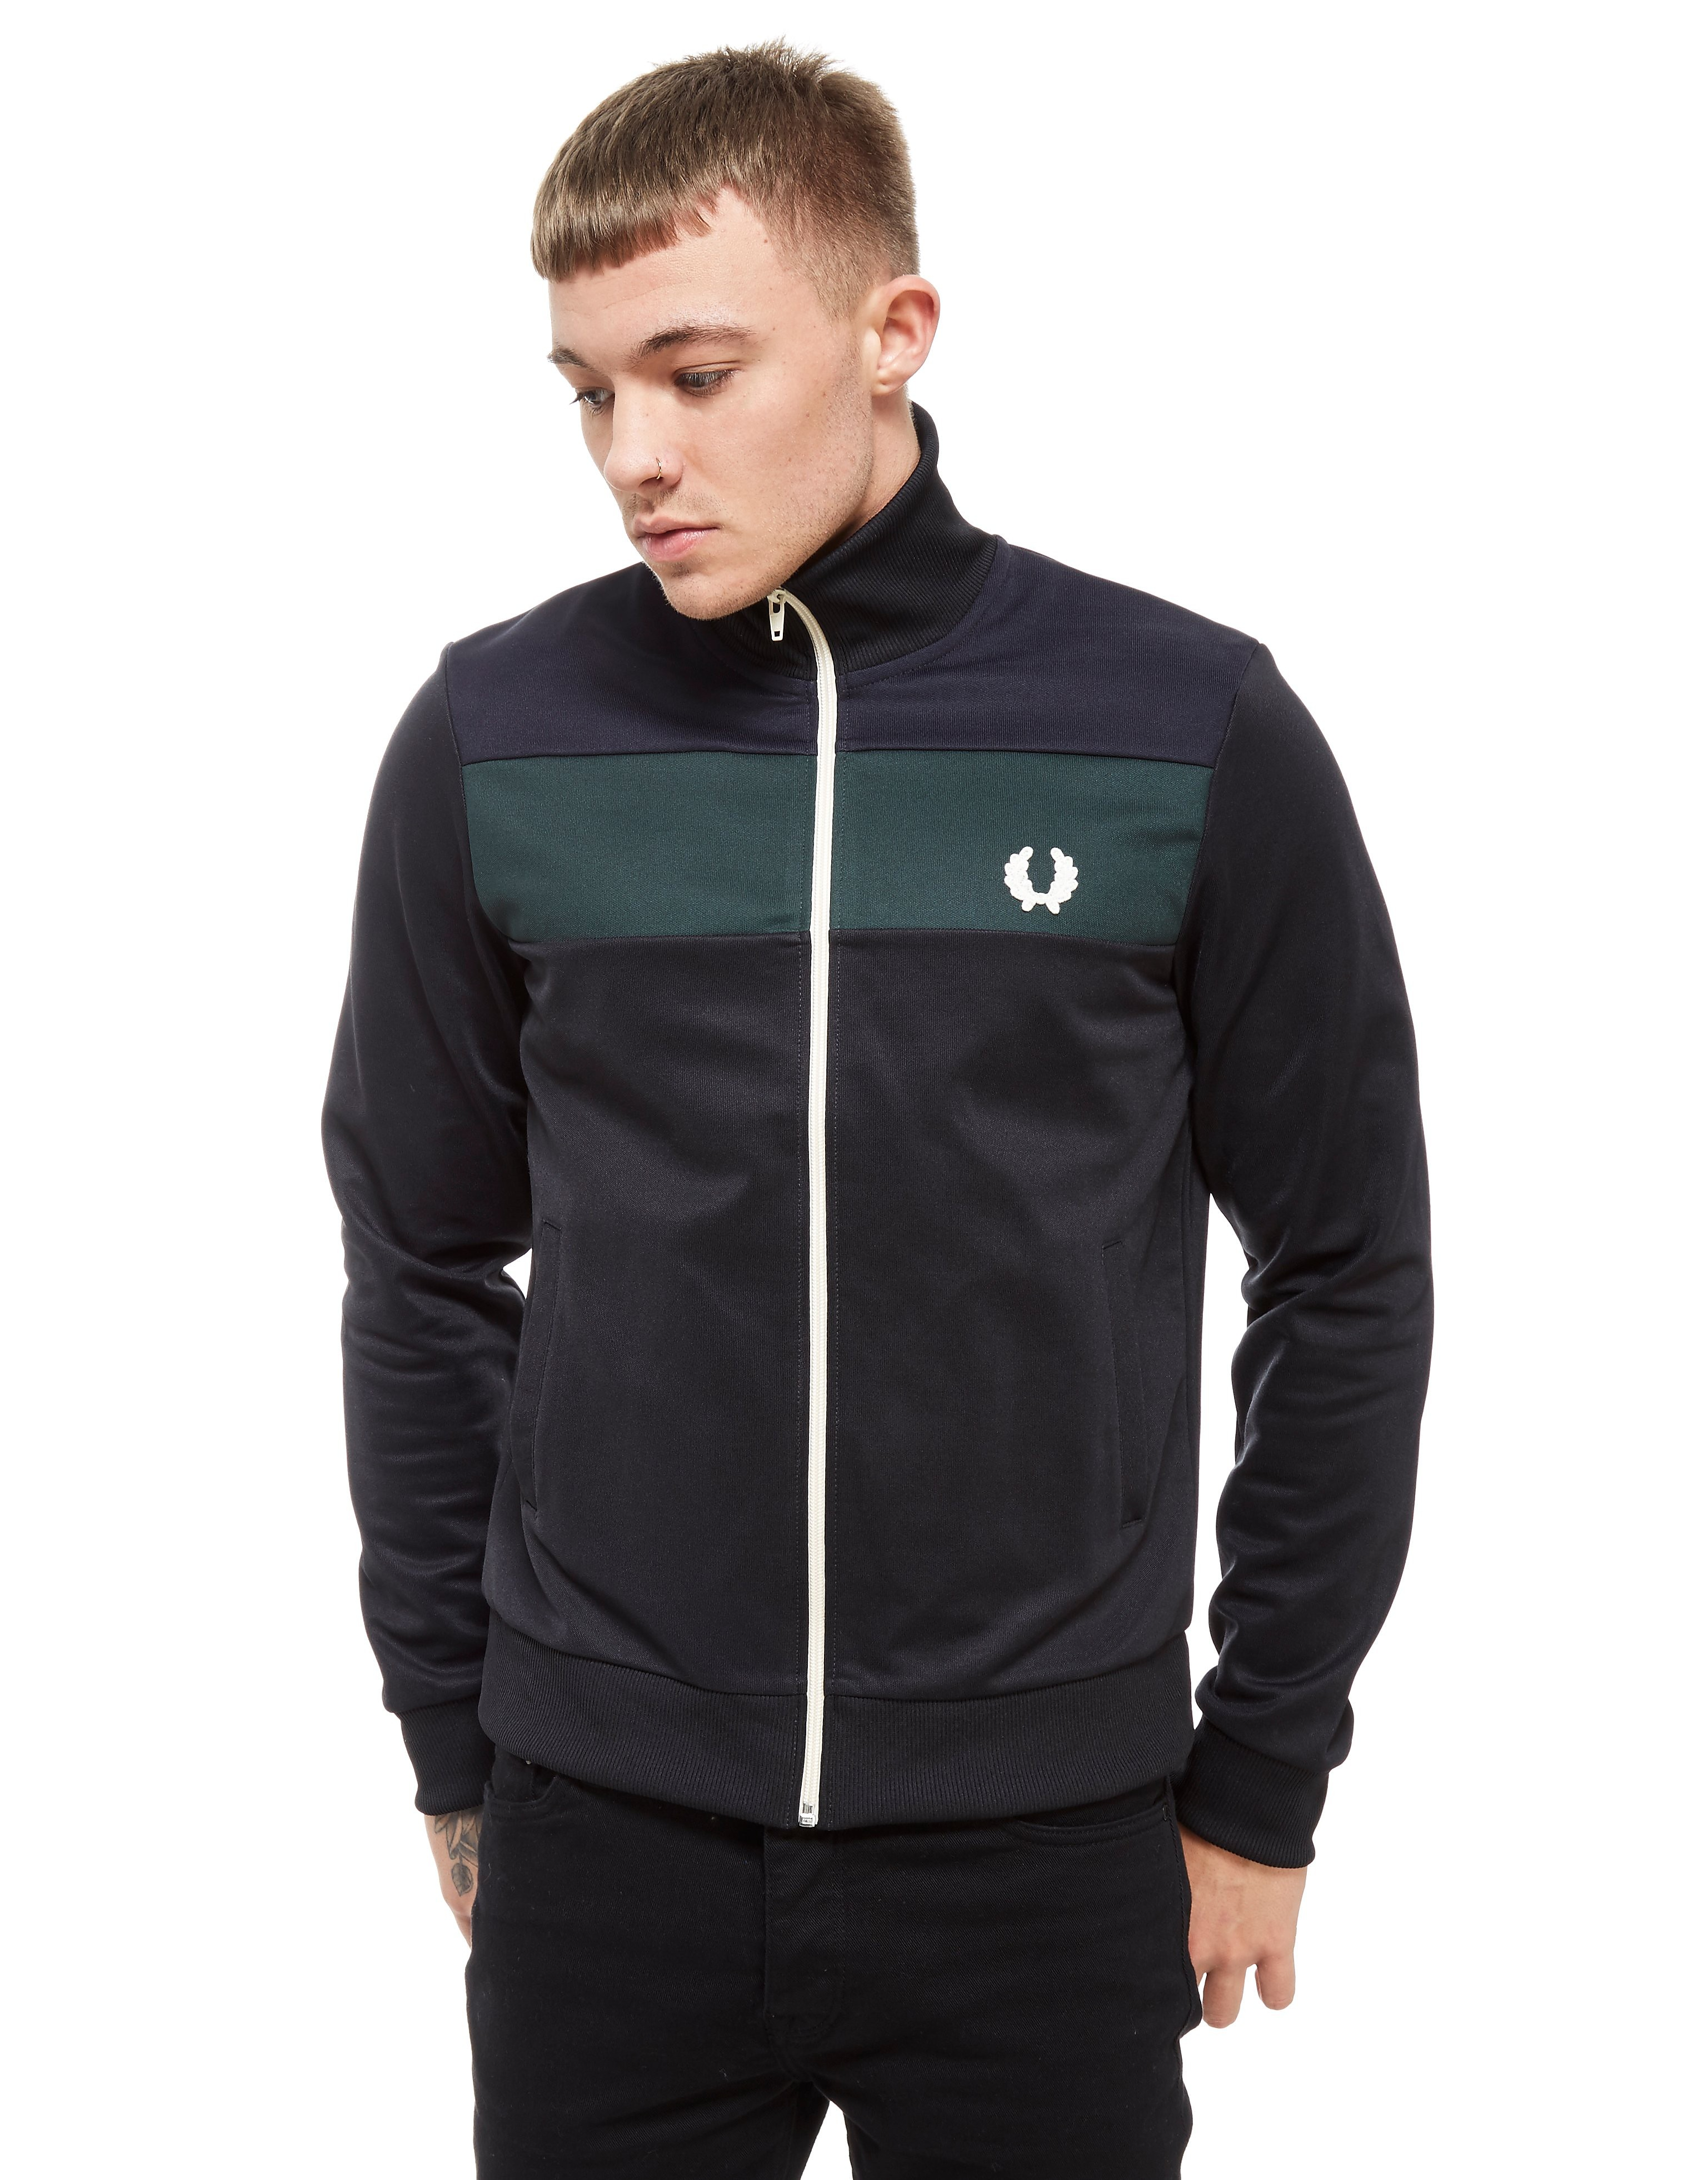 Fred Perry Colourblock Track Top